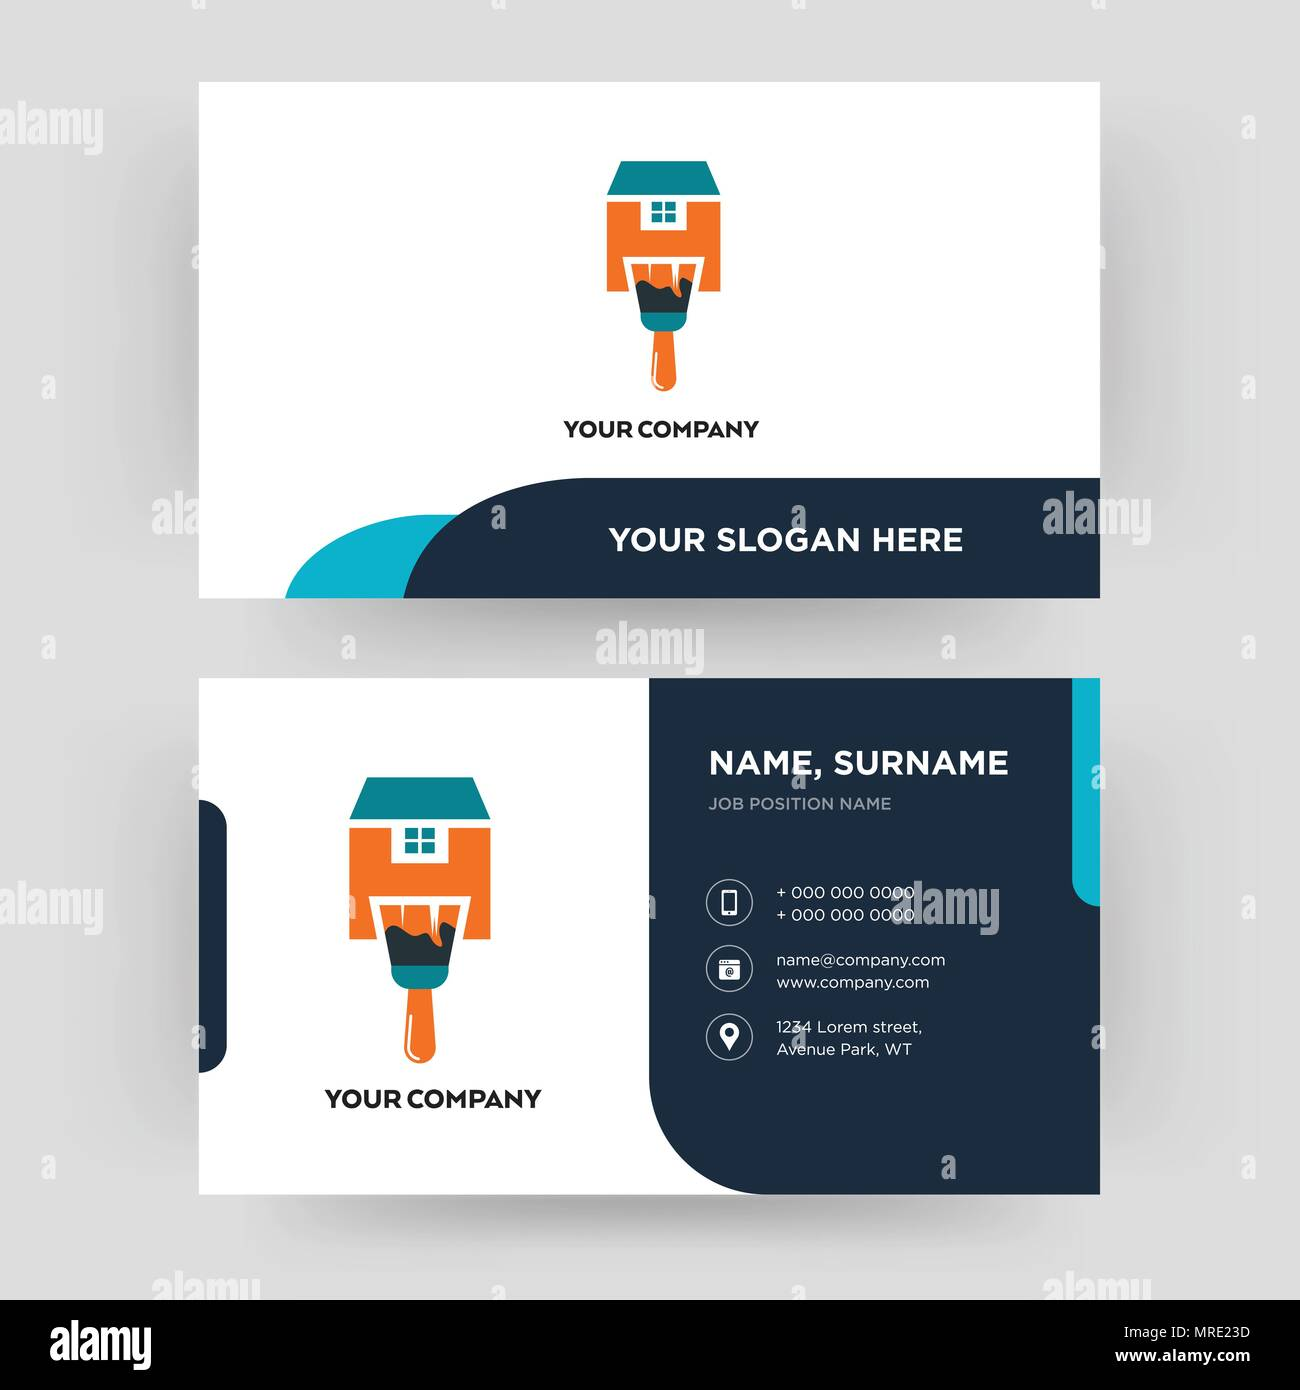 Home paint business card design template visiting for your company home paint business card design template visiting for your company modern creative and clean identity card vector friedricerecipe